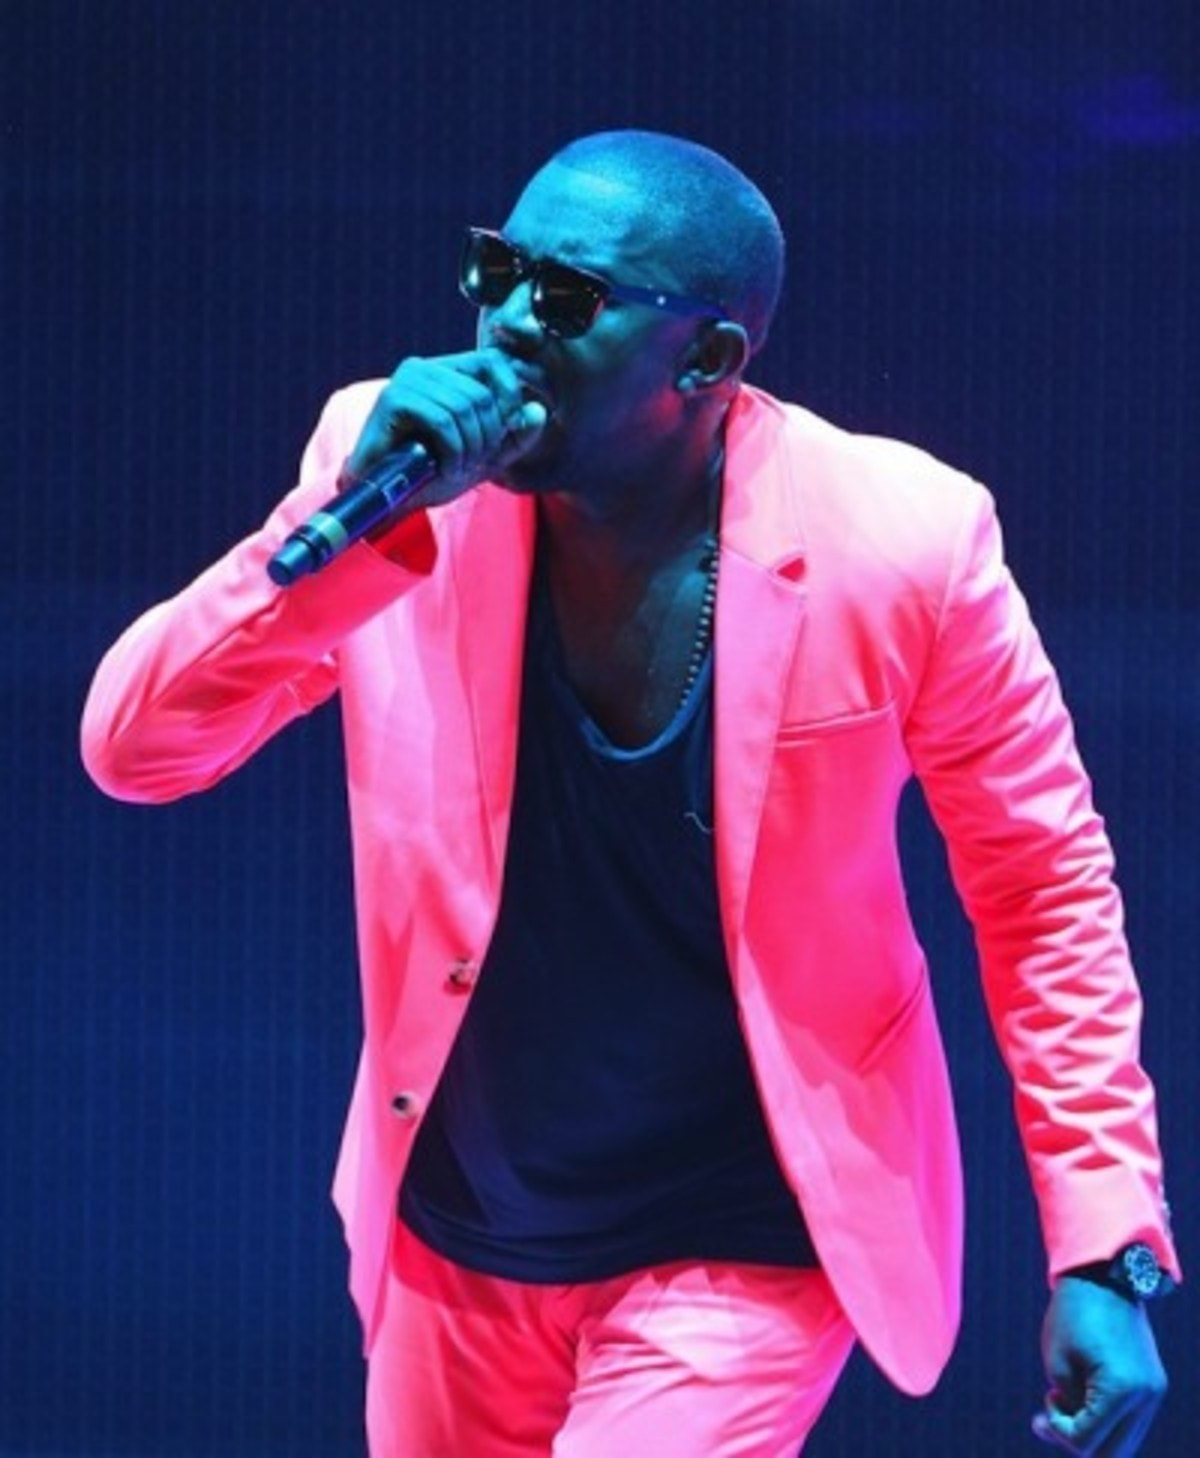 KanyeWest-PINK-SUIT-e1281128736817